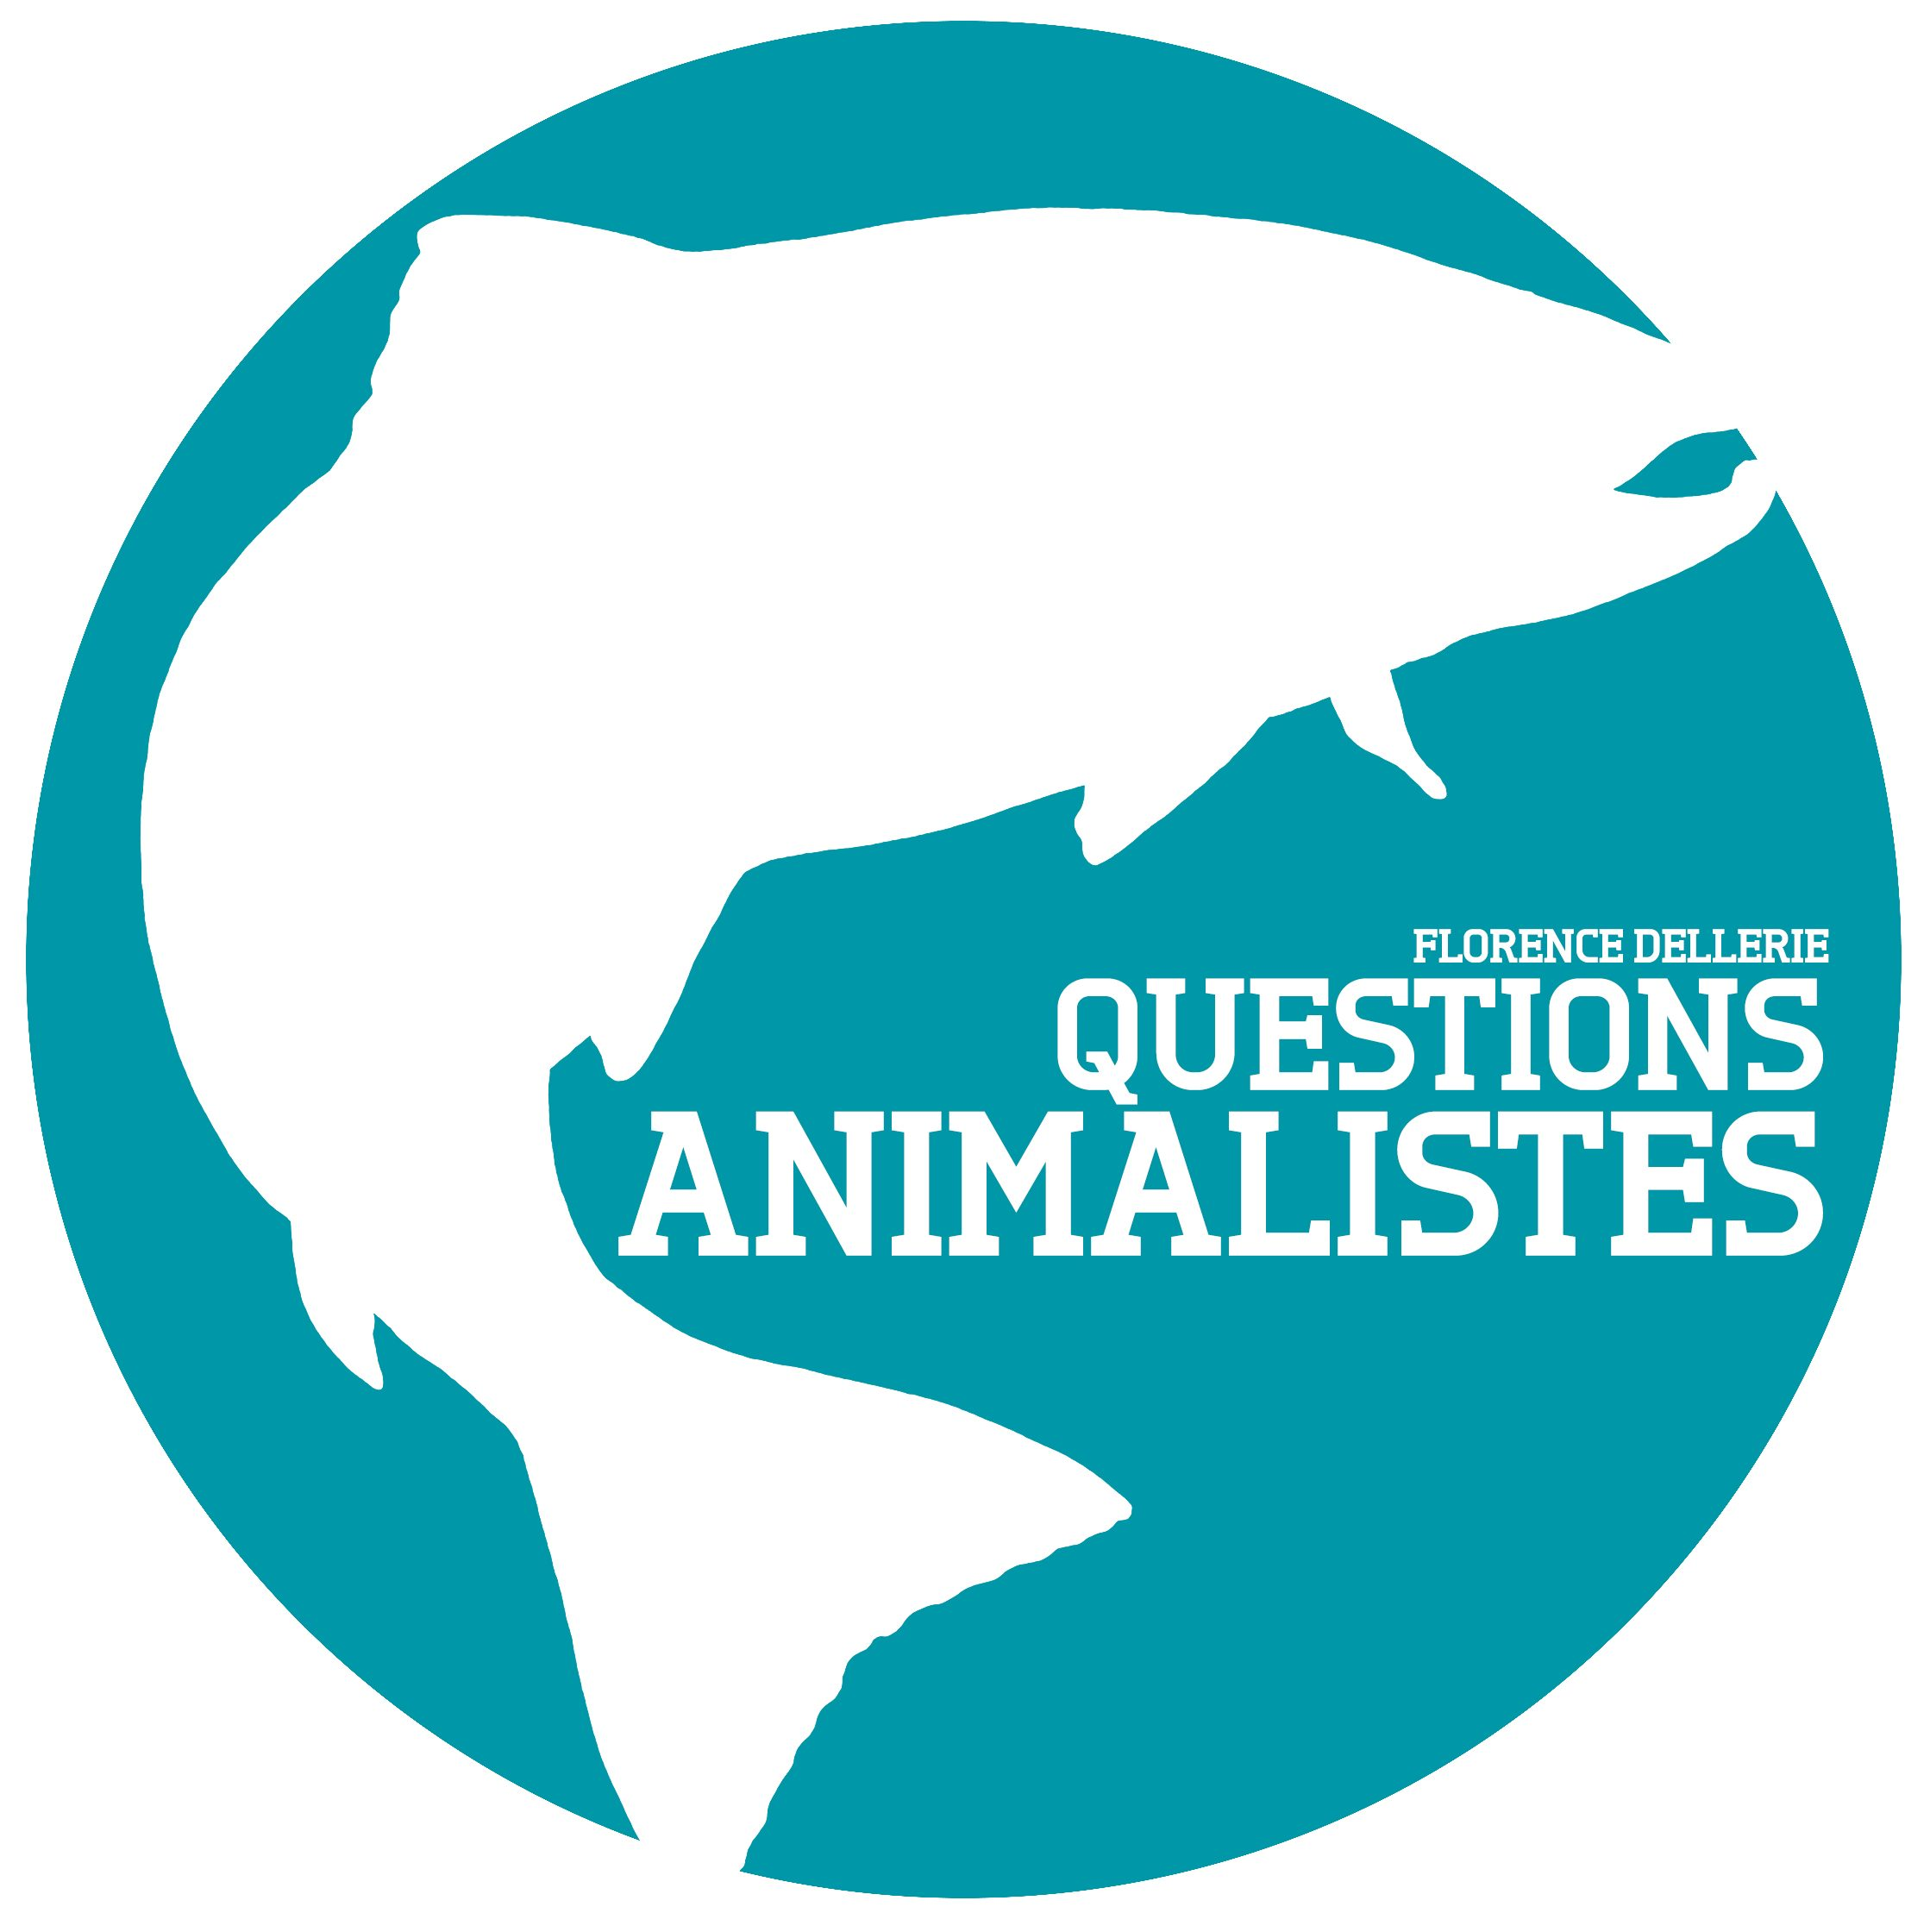 Questions animalistes - logo - Florence Dellerie